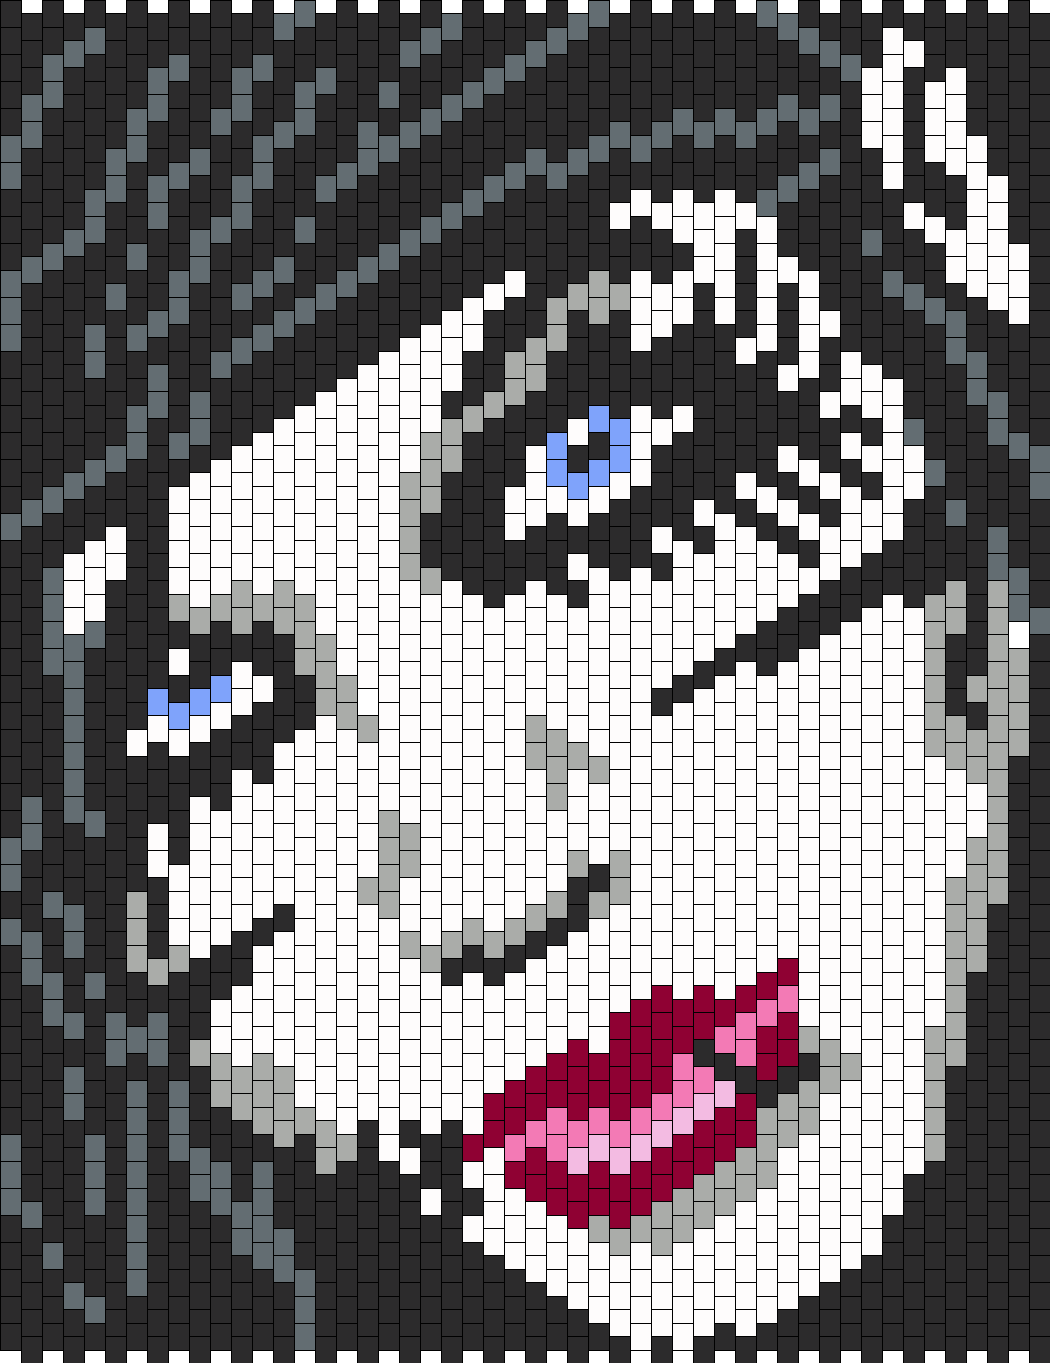 Andy Biersack From Black Veil Brides Bead Pattern : Peyote Bead ...